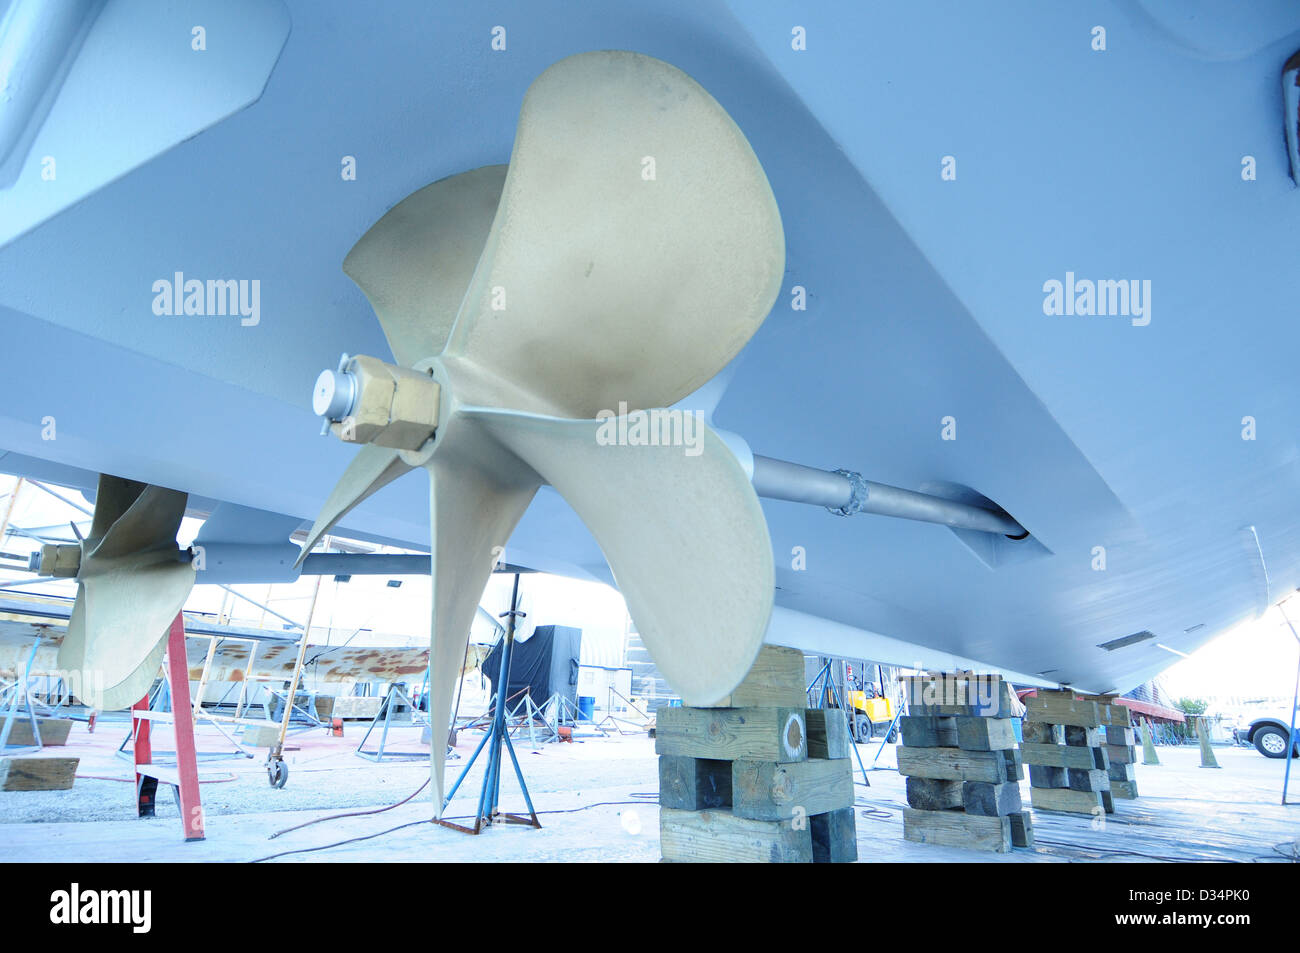 fixing boat propeller that is up on wood blocks - Stock Image